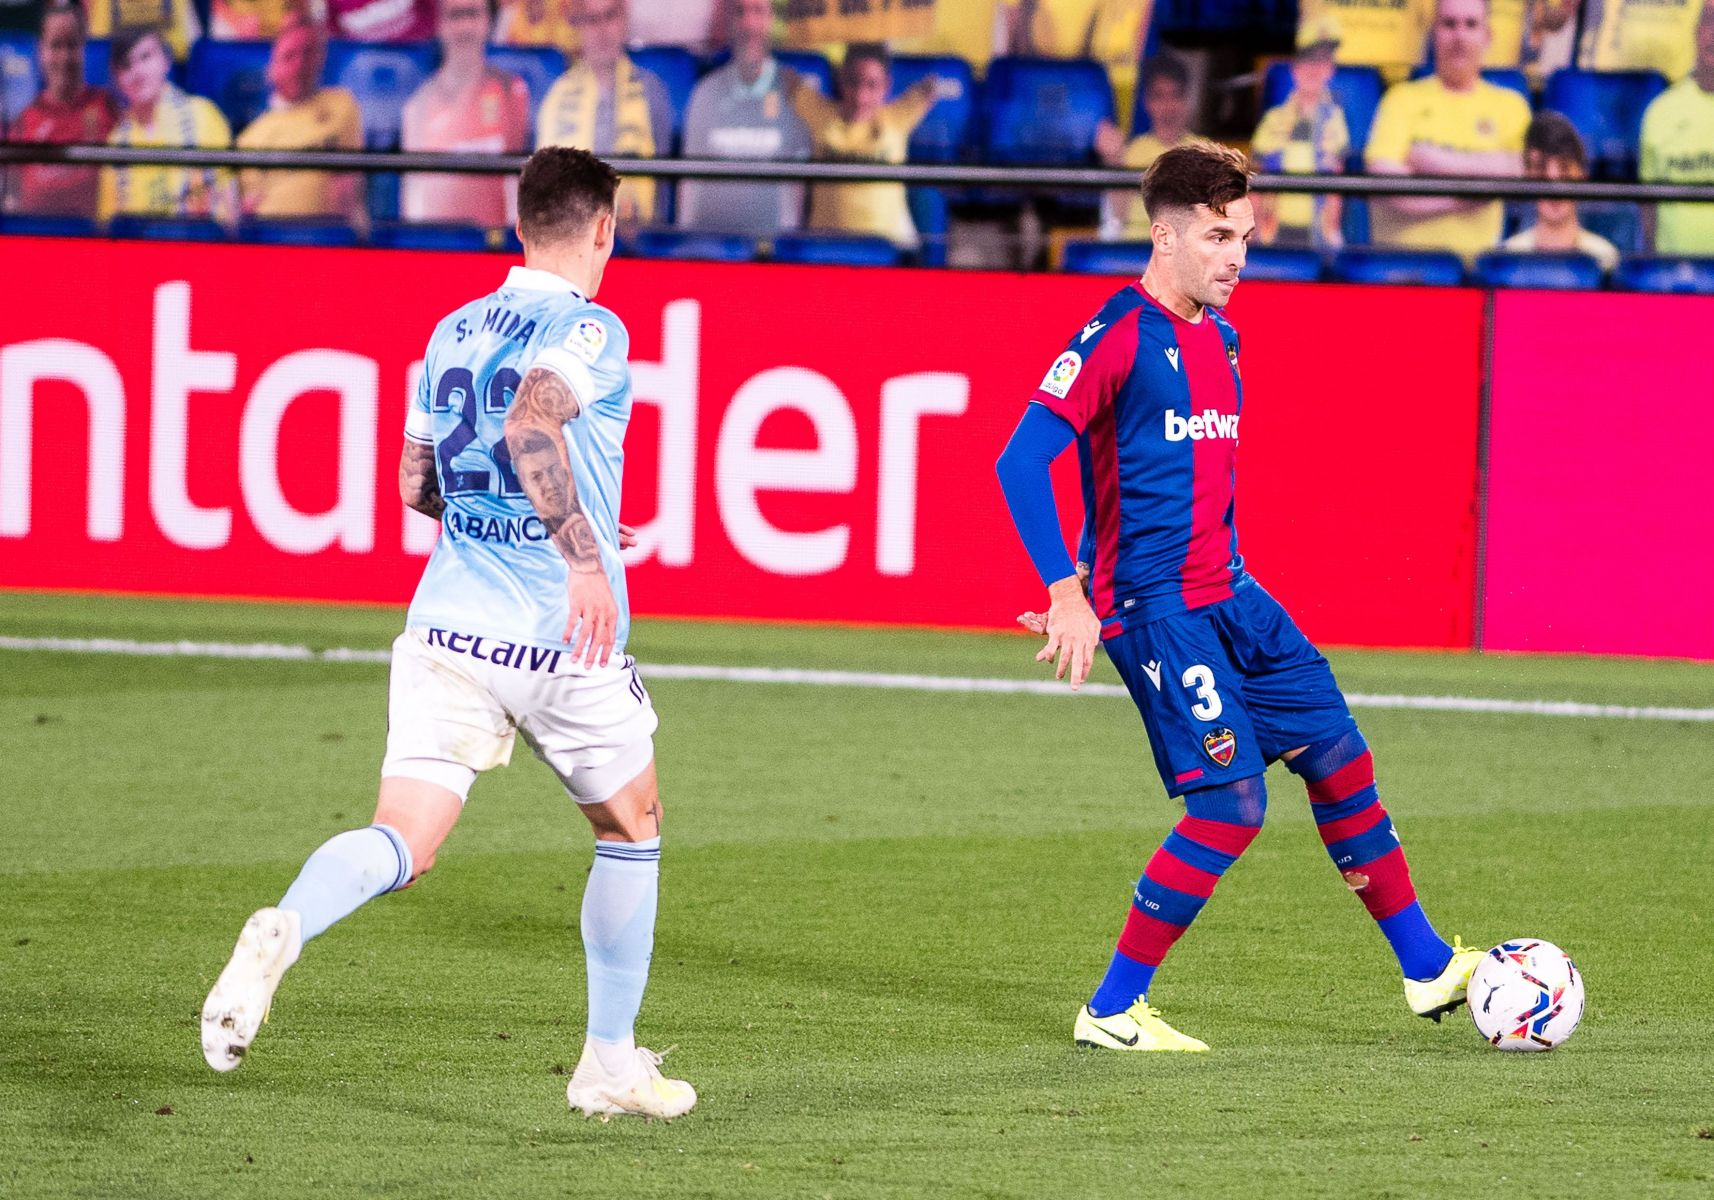 Twitter @LevanteUD